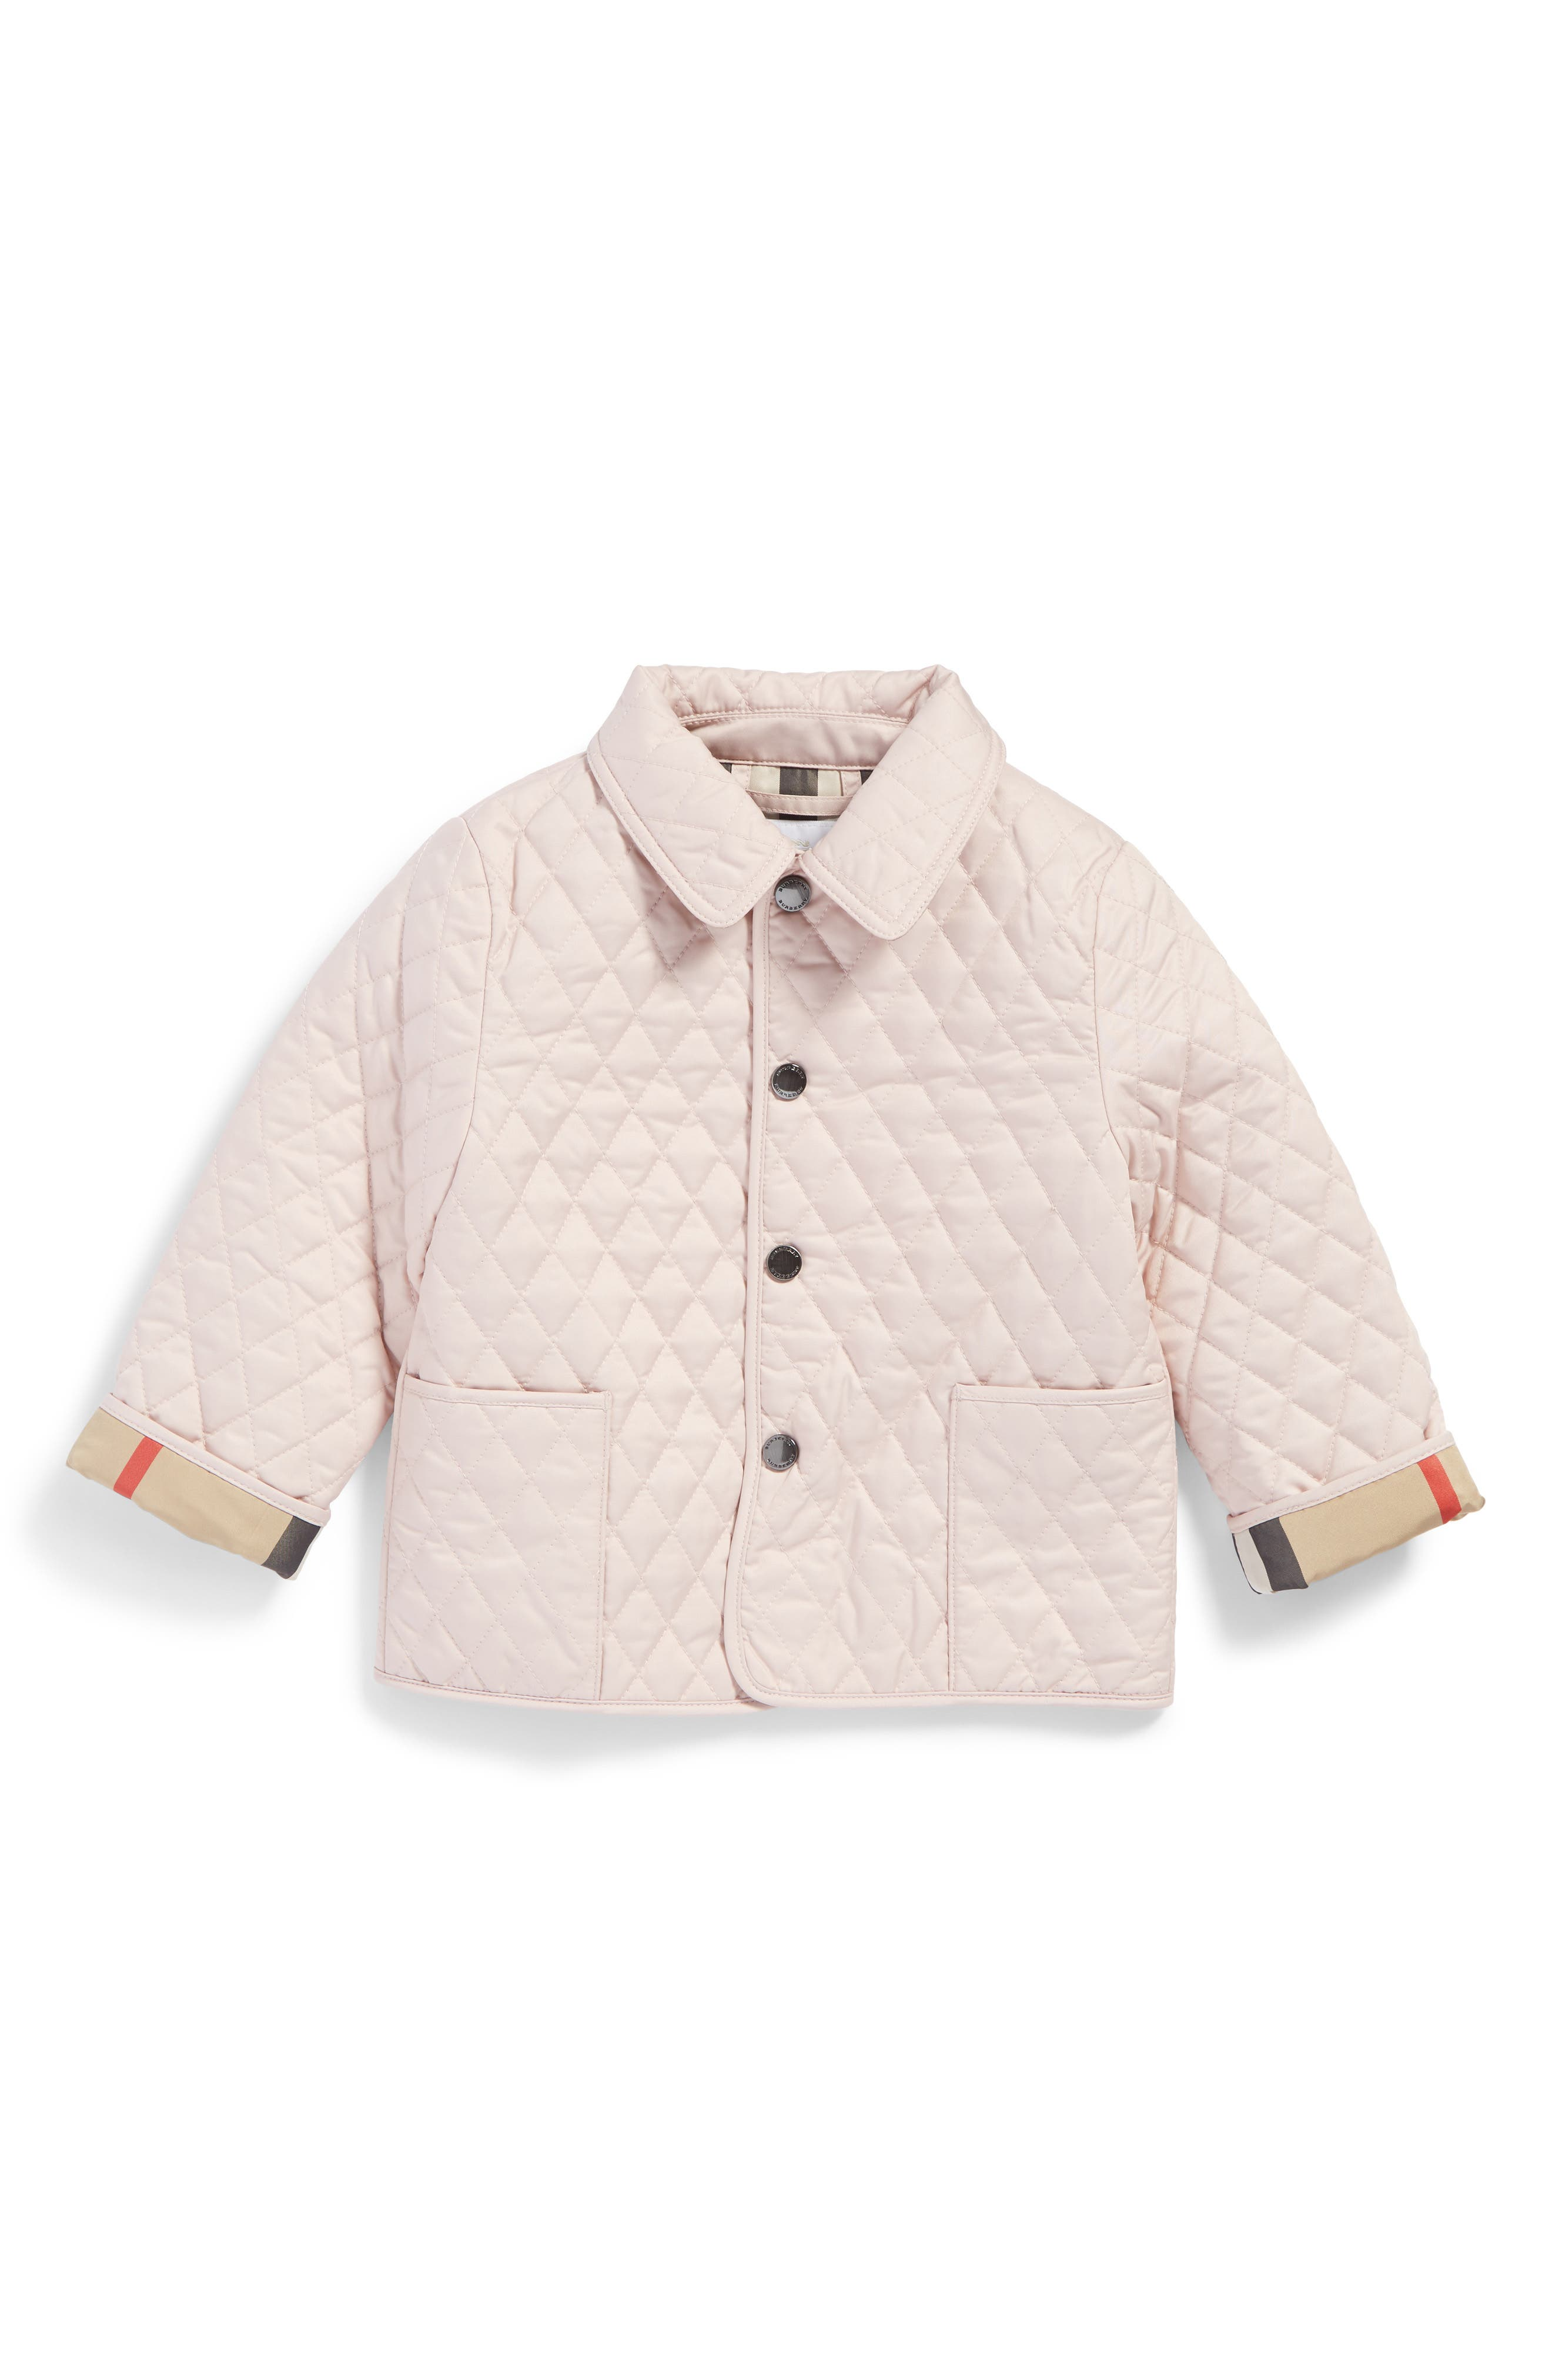 Colin Quilted Jacket,                             Main thumbnail 1, color,                             681